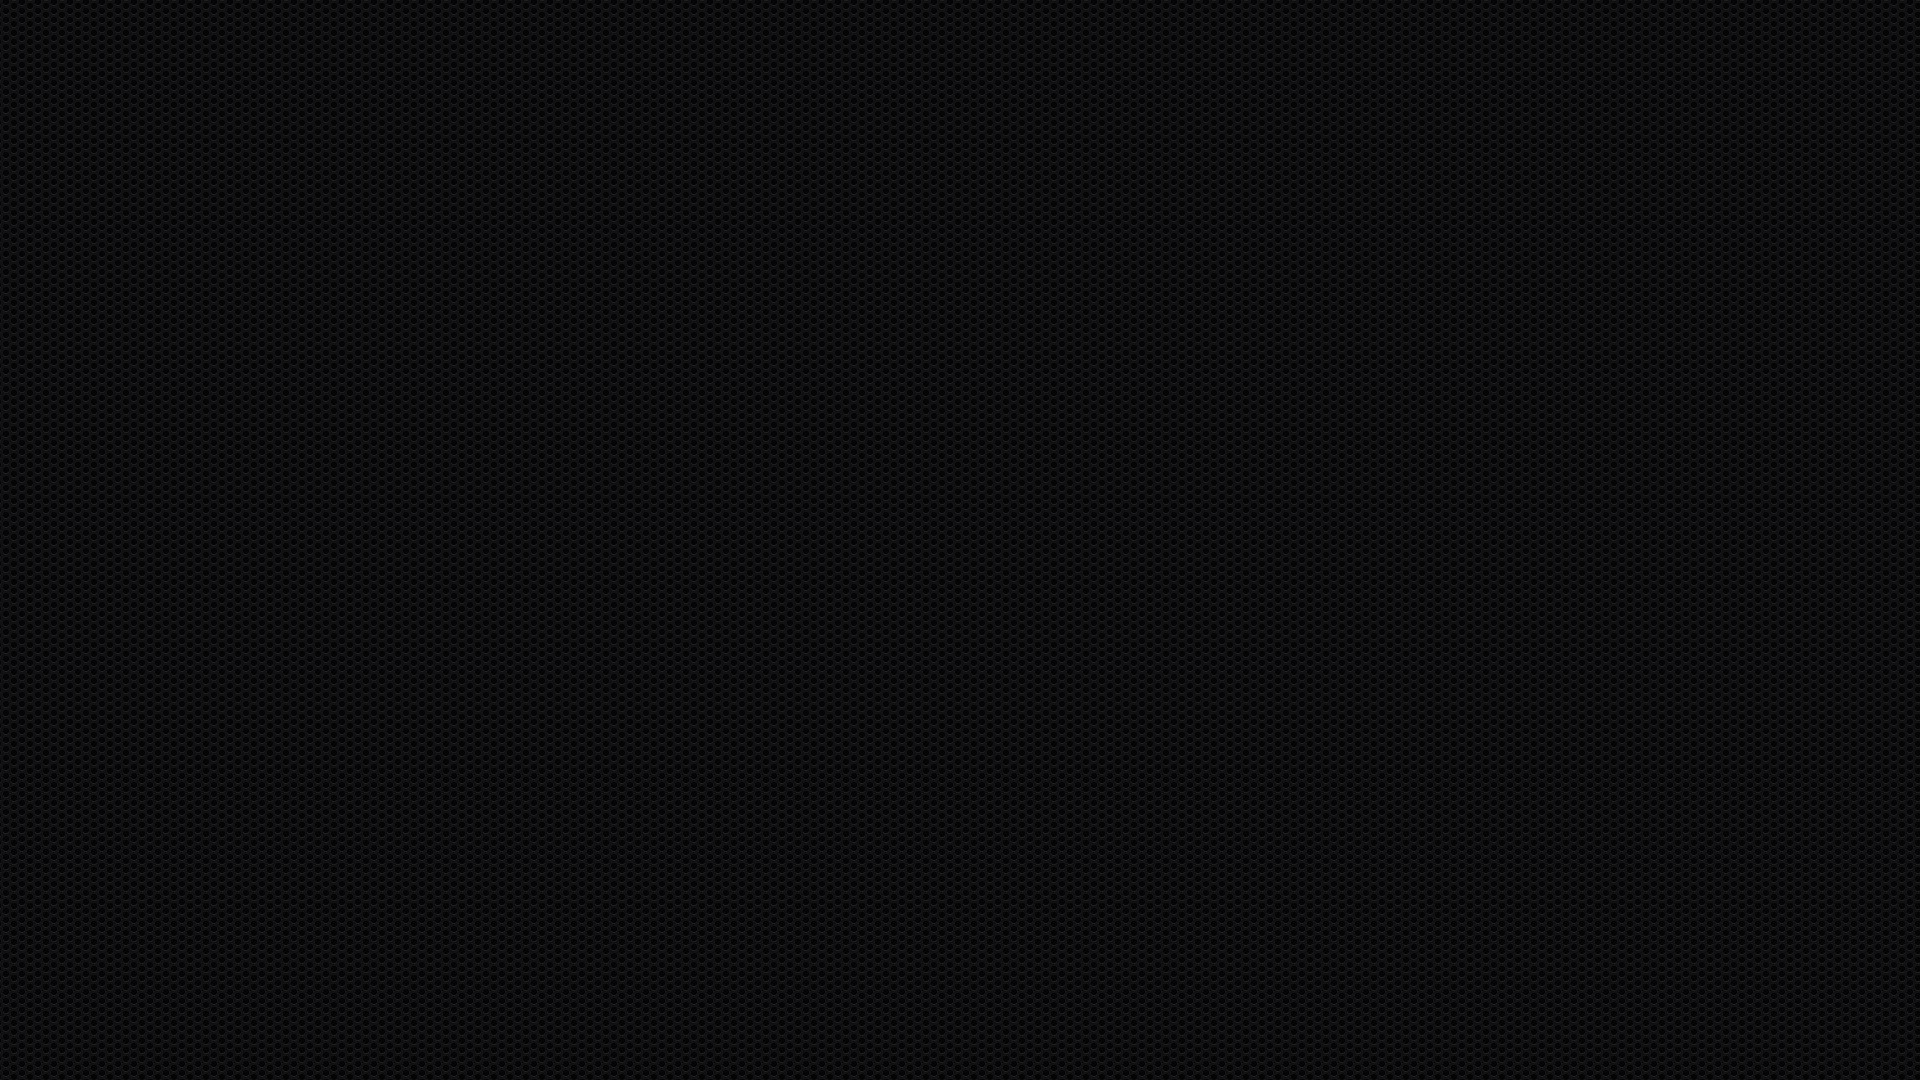 Plain Black Wallpaper 22 Wide Wallpaper   Hdblackwallpapercom 1920x1080